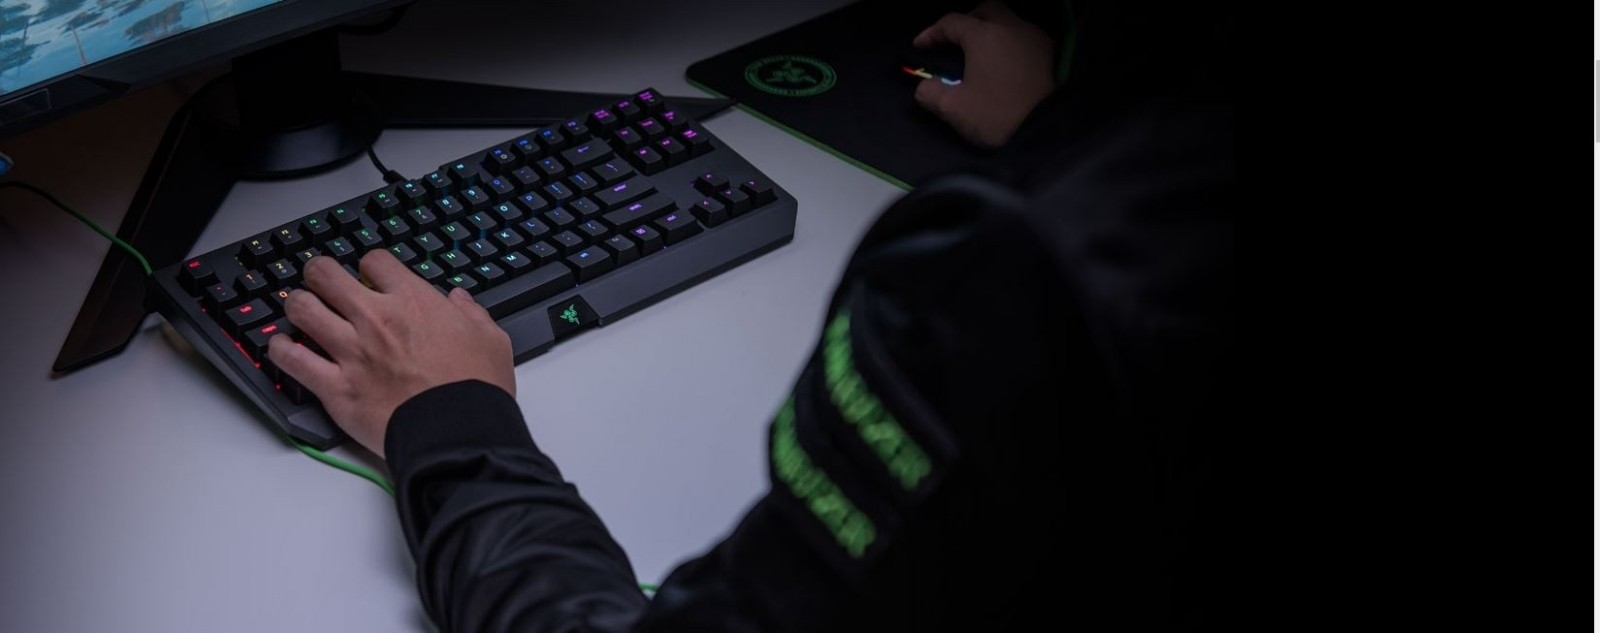 Razer Blackwidow Elite Rgb Mechanical Gaming Keyboard